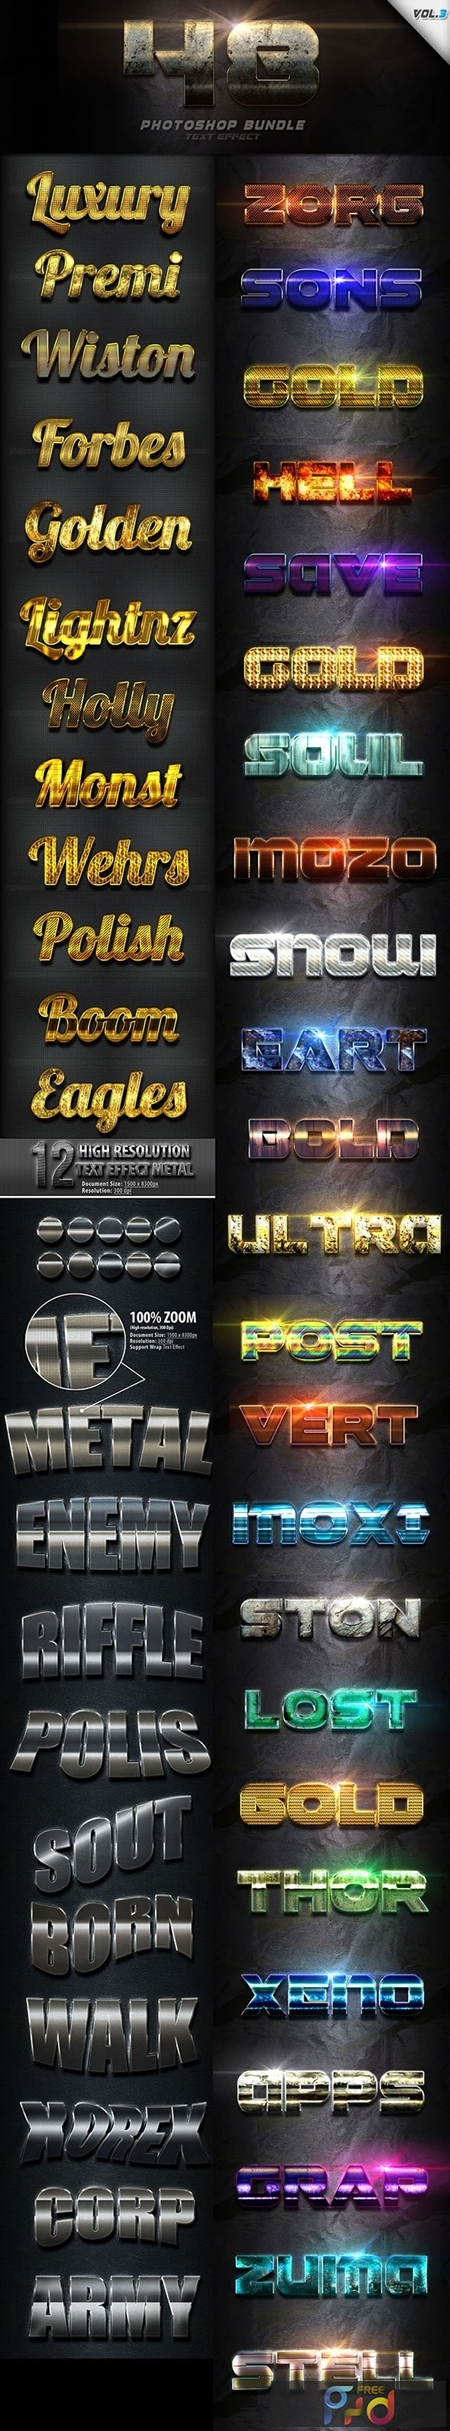 48 Text Effect Bundle Vol 3 24687013 1